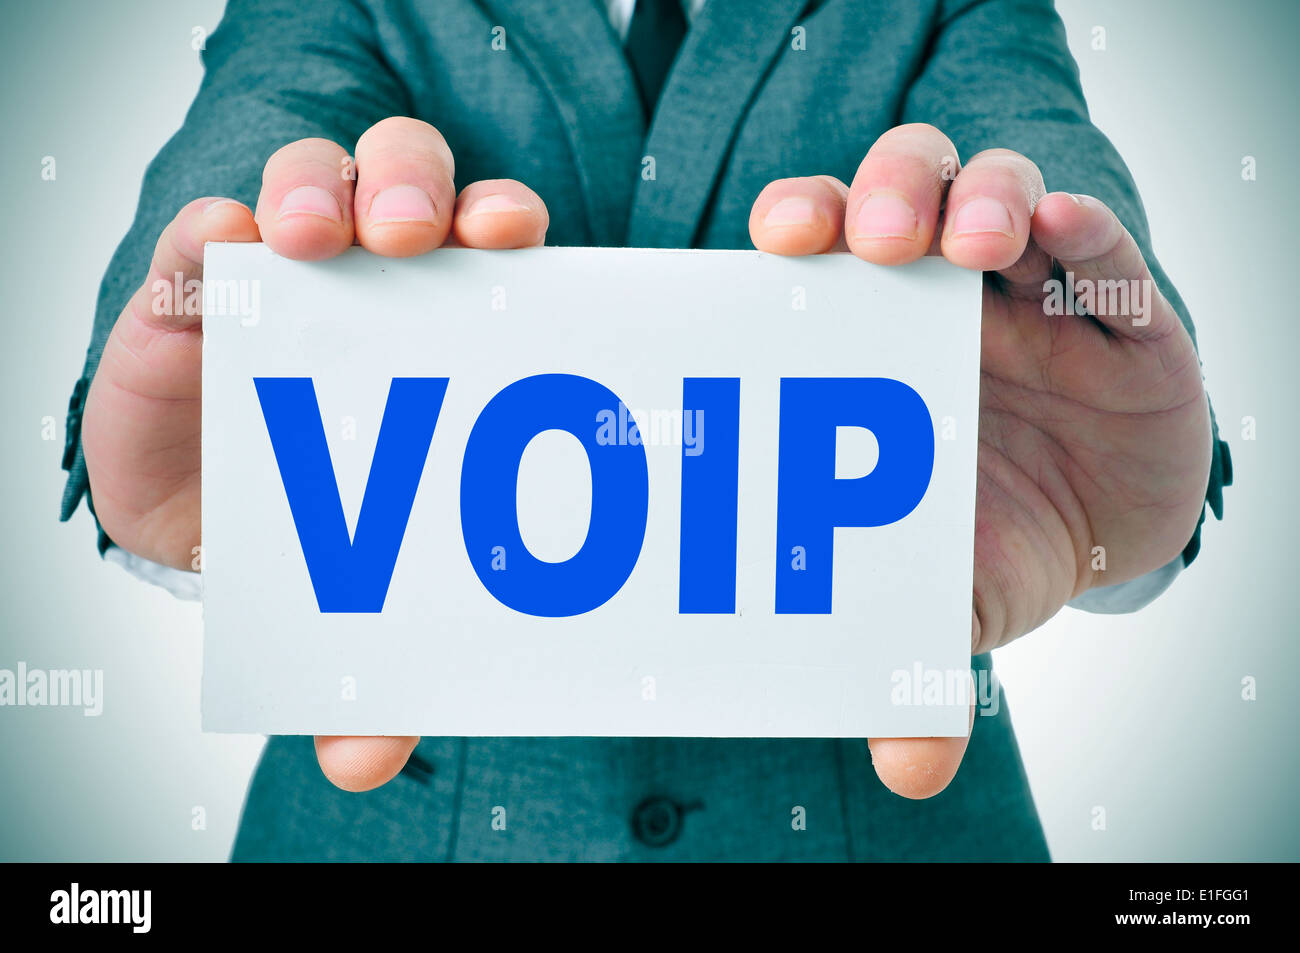 Voip Application Stock Photos & Voip Application Stock